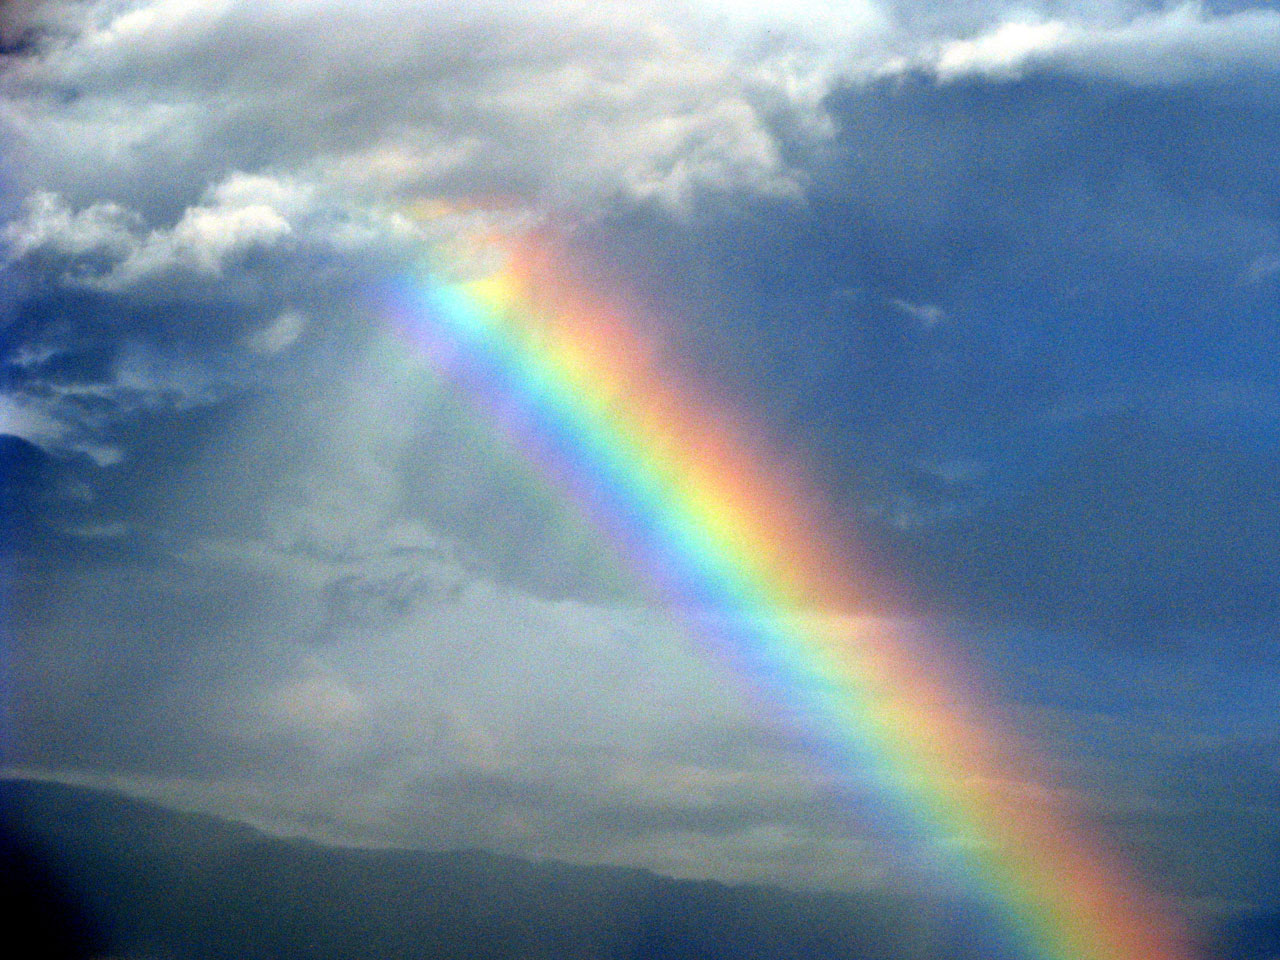 Enhanced Rainbow Free Stock Photo   Public Domain Pictures Free Download